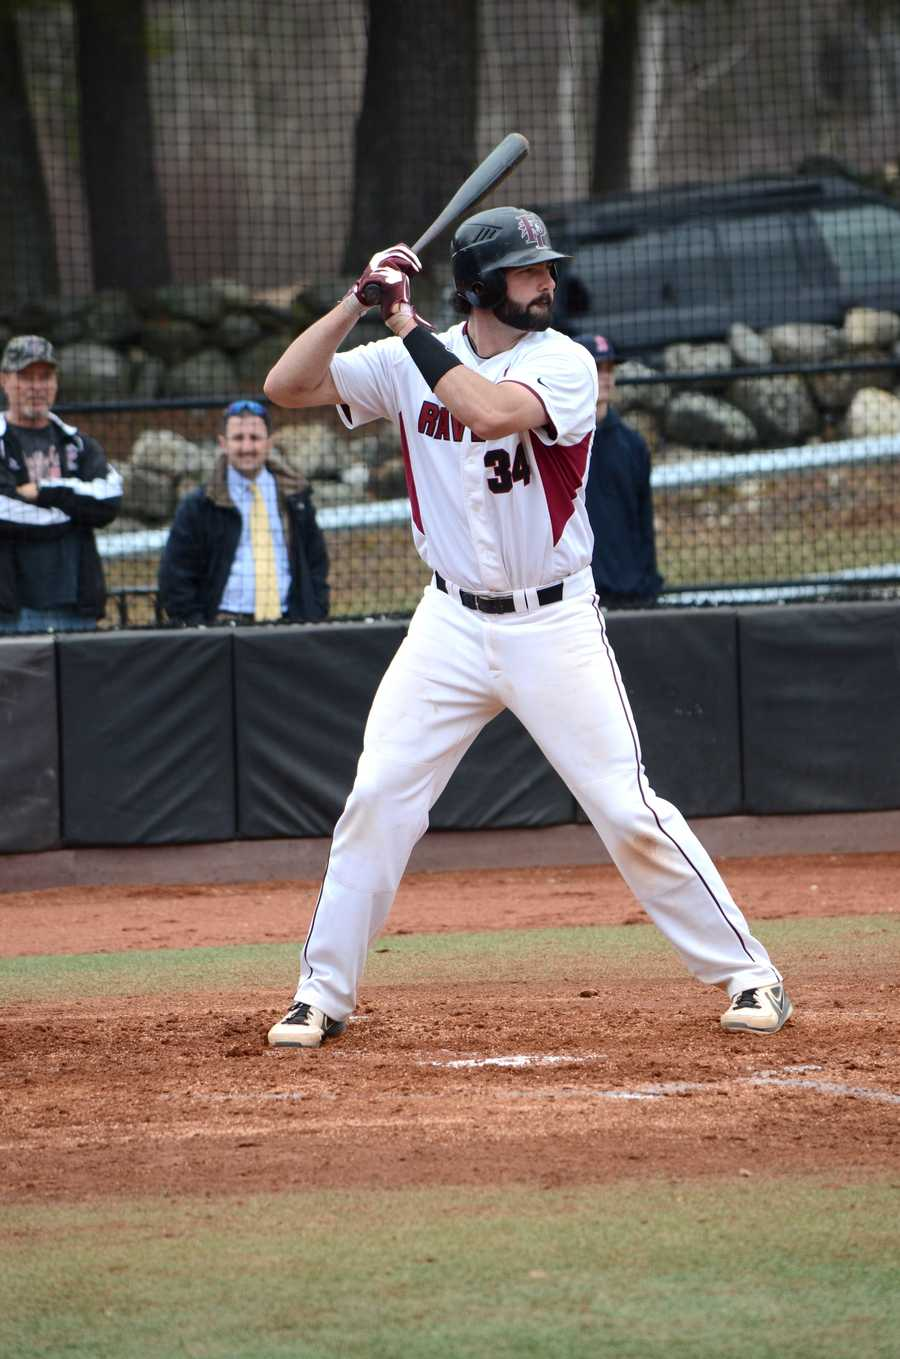 Several New Hampshire ballplayers could be drafted by Major League Baseball teams this week, including 1B Zach Matthieu.